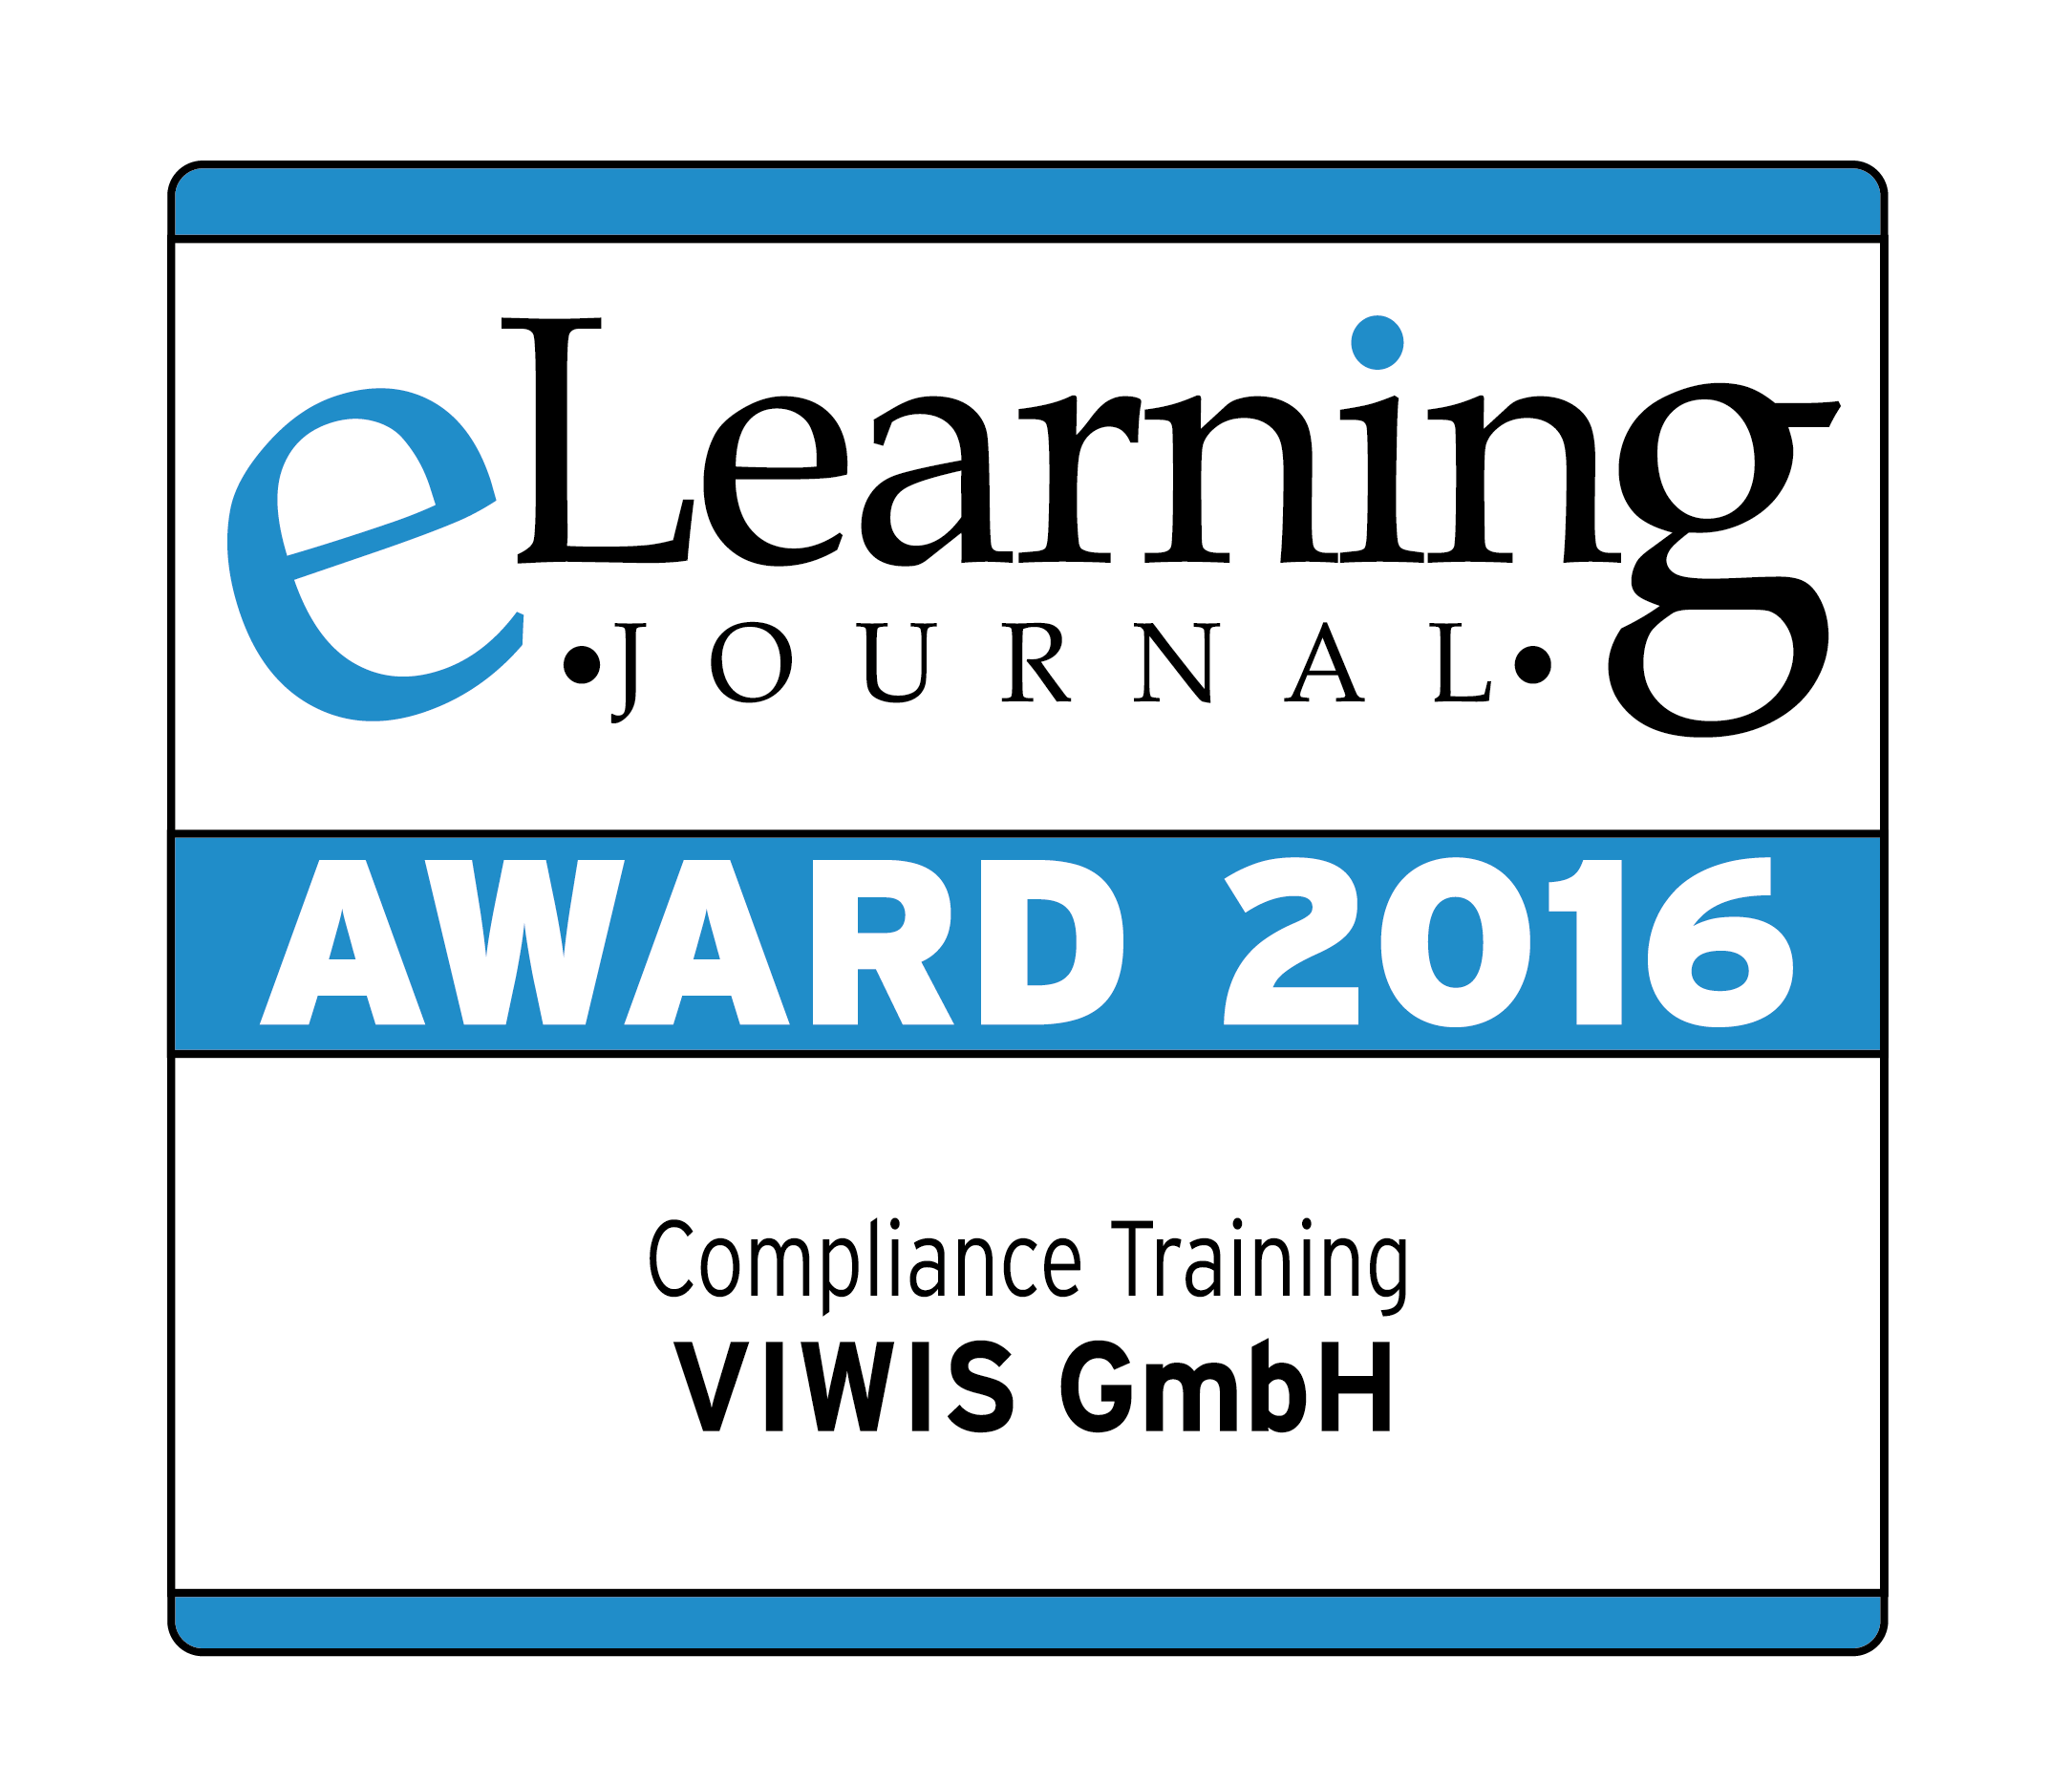 eLearning Journal Award 2016 für VIWIS